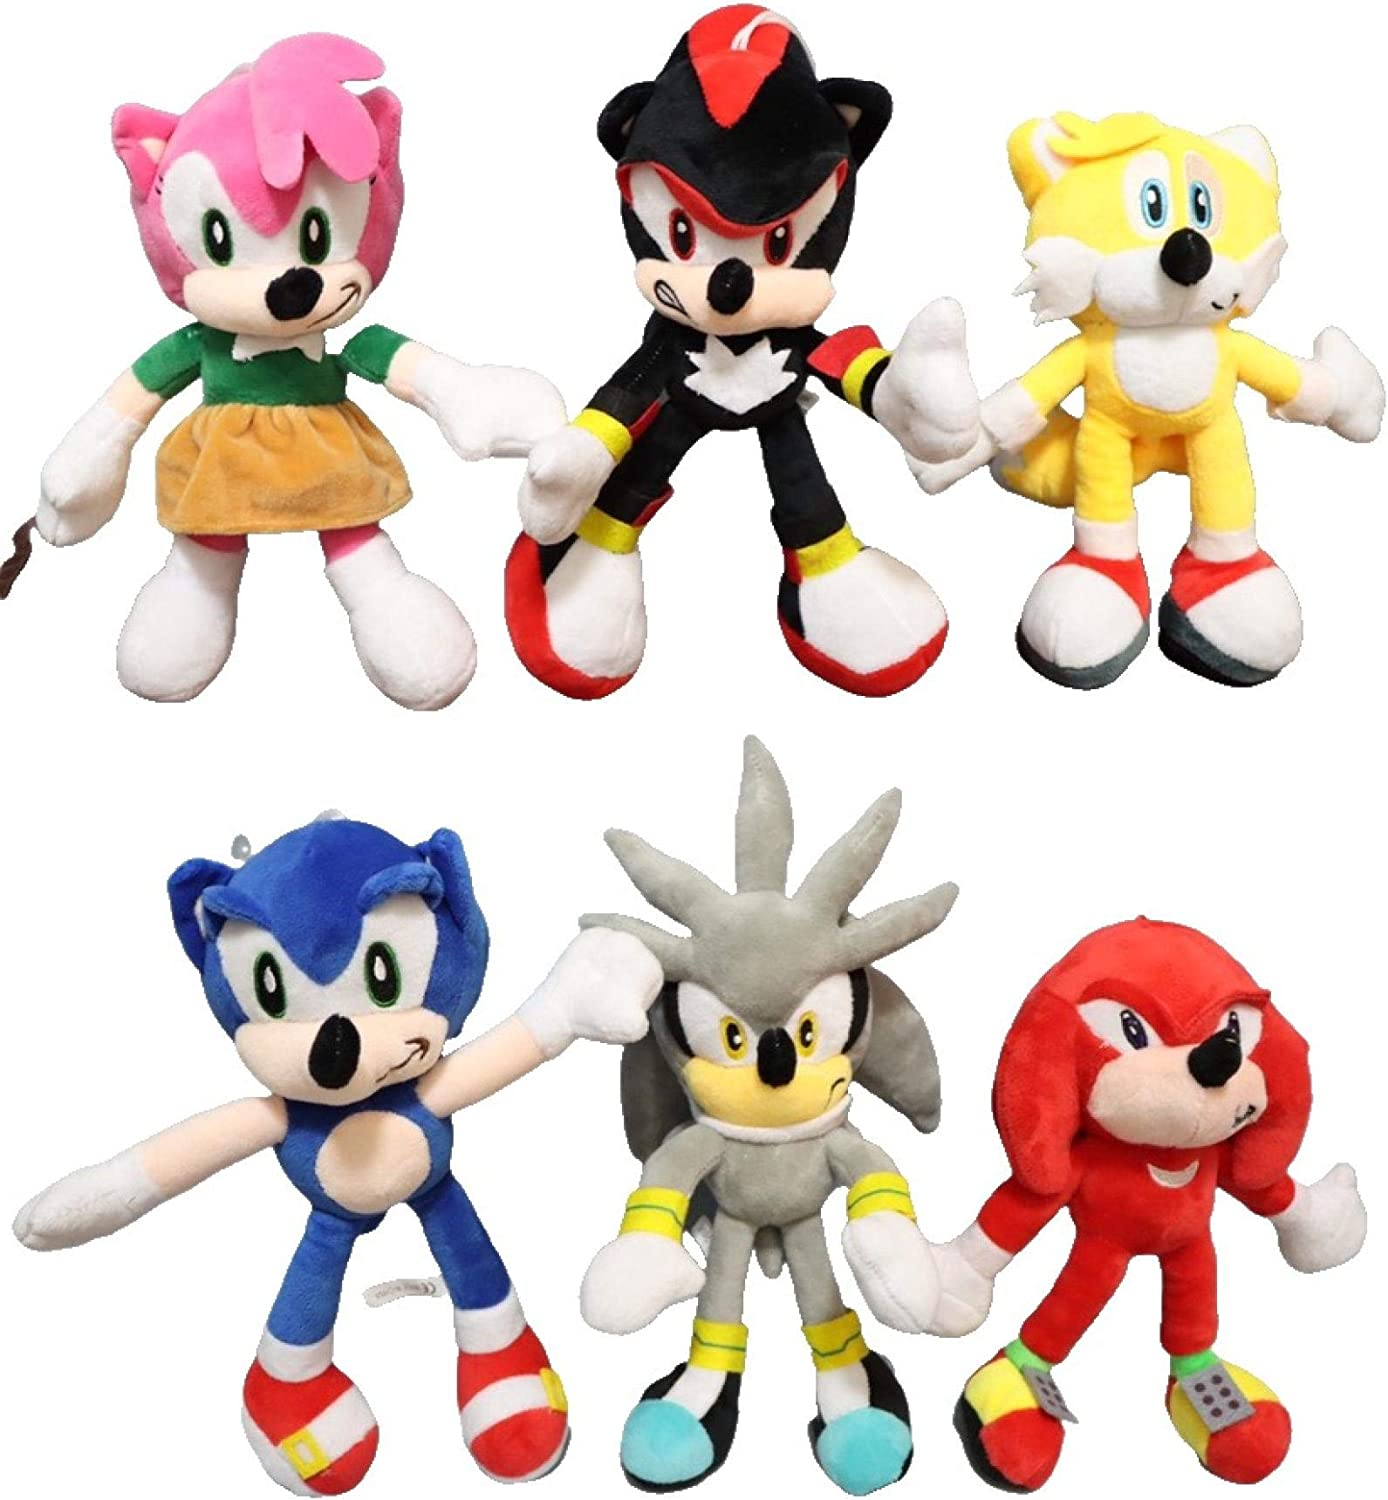 Sonic anime doll 6pcs lot plush sonic Gifts Bombing free shipping toy Anime